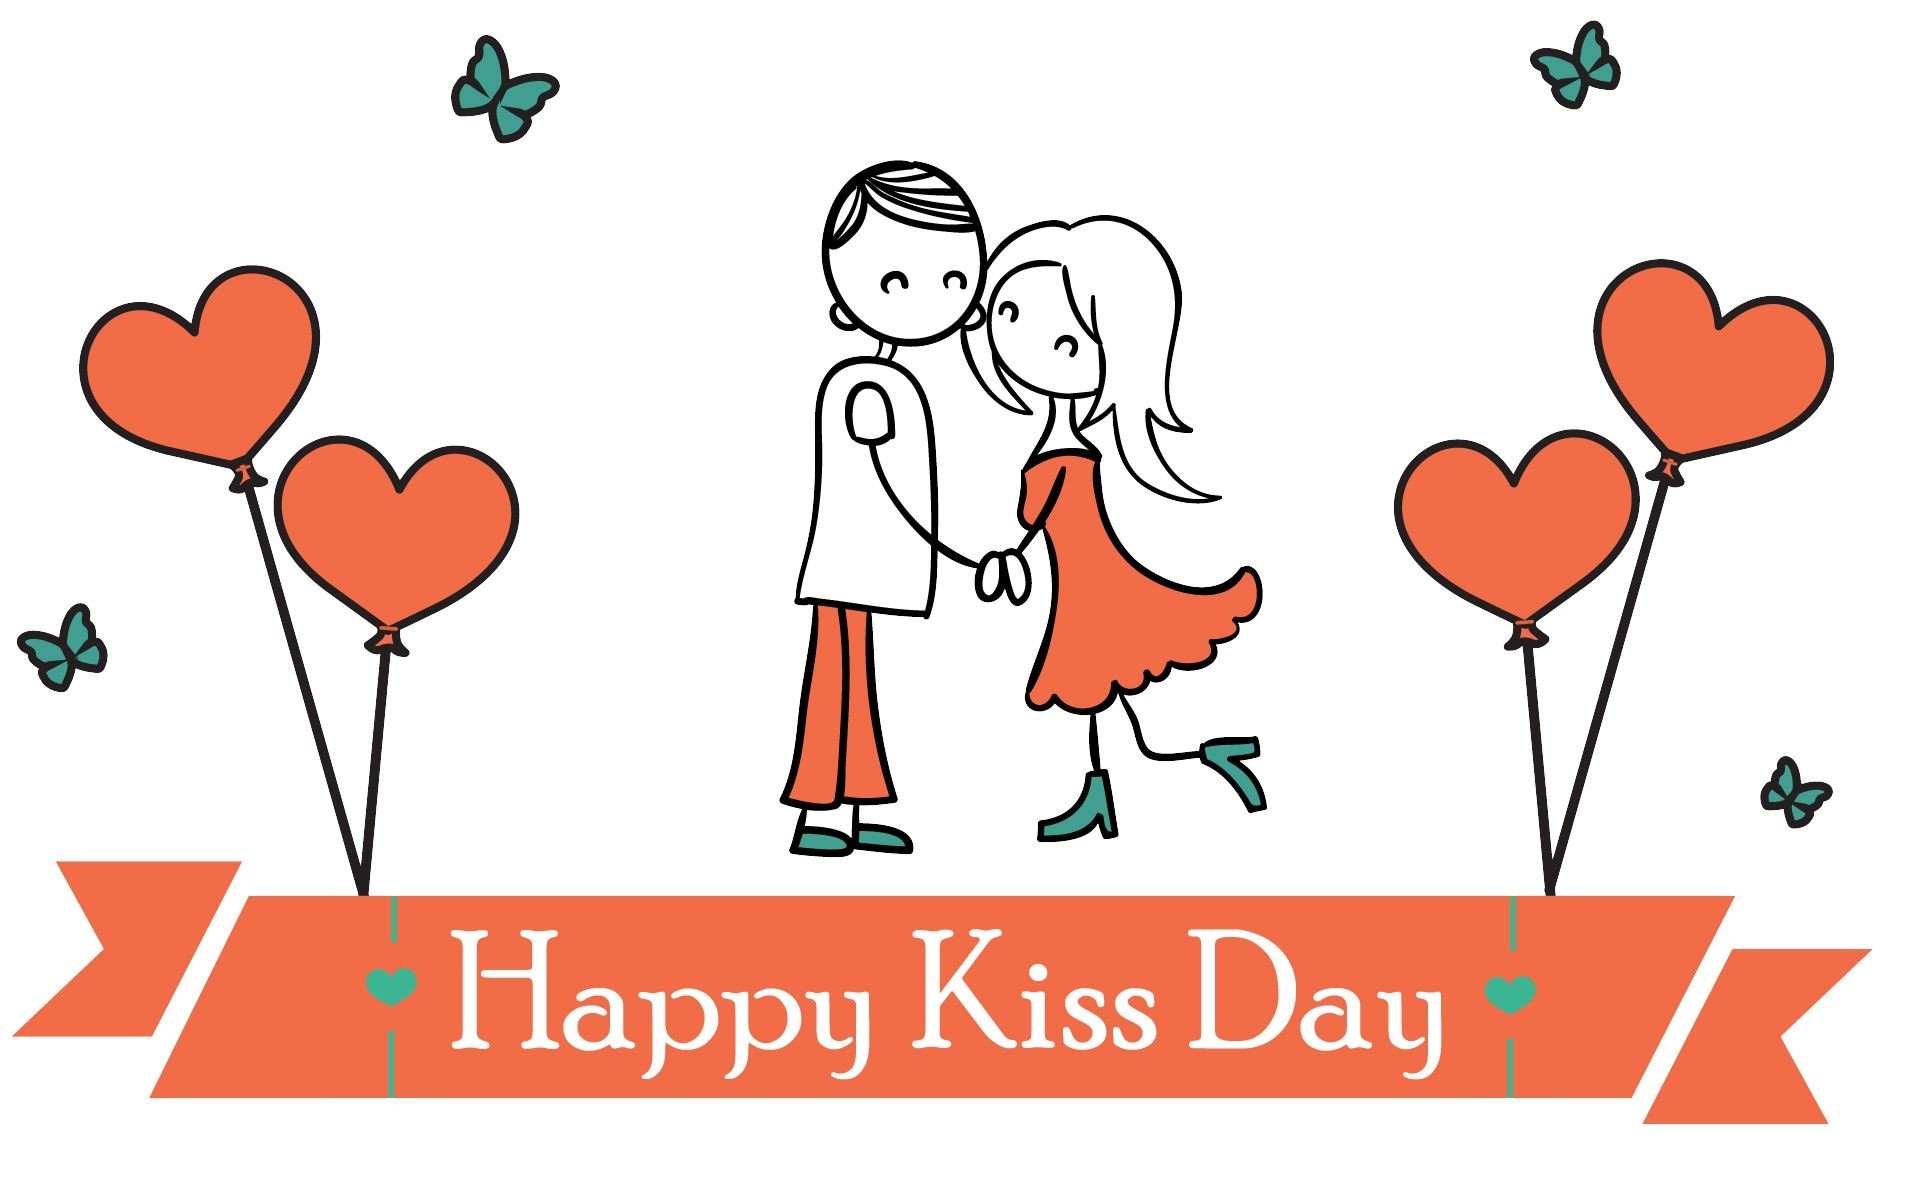 Download Kiss Wallpaper, Kiss Day E-Greetings, Friendship Ecards, Happy  Kiss Day